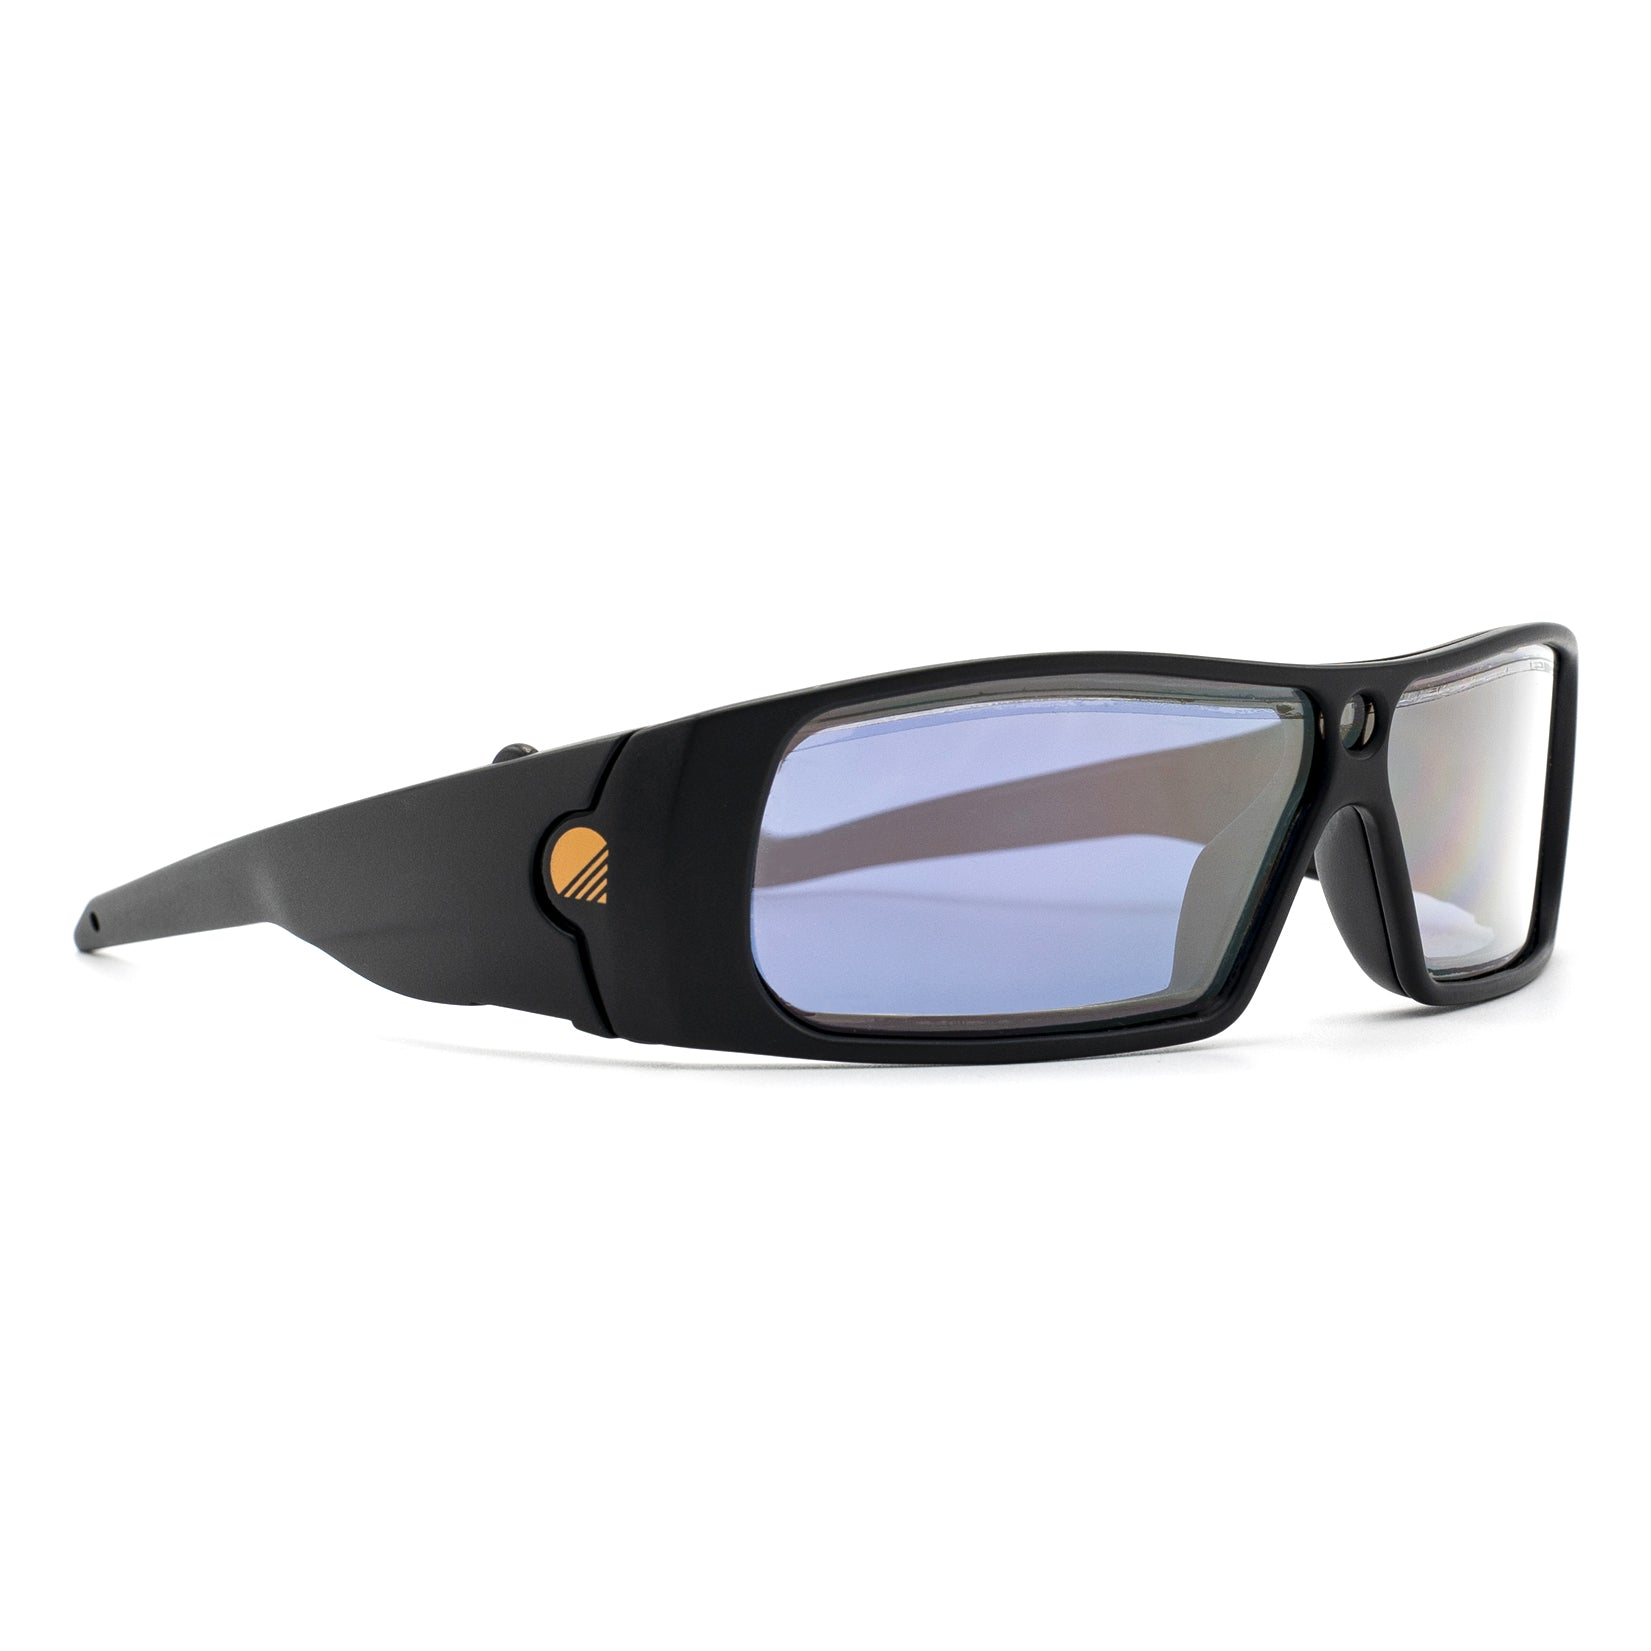 Fades Auto Darkening Golf Sunglasses